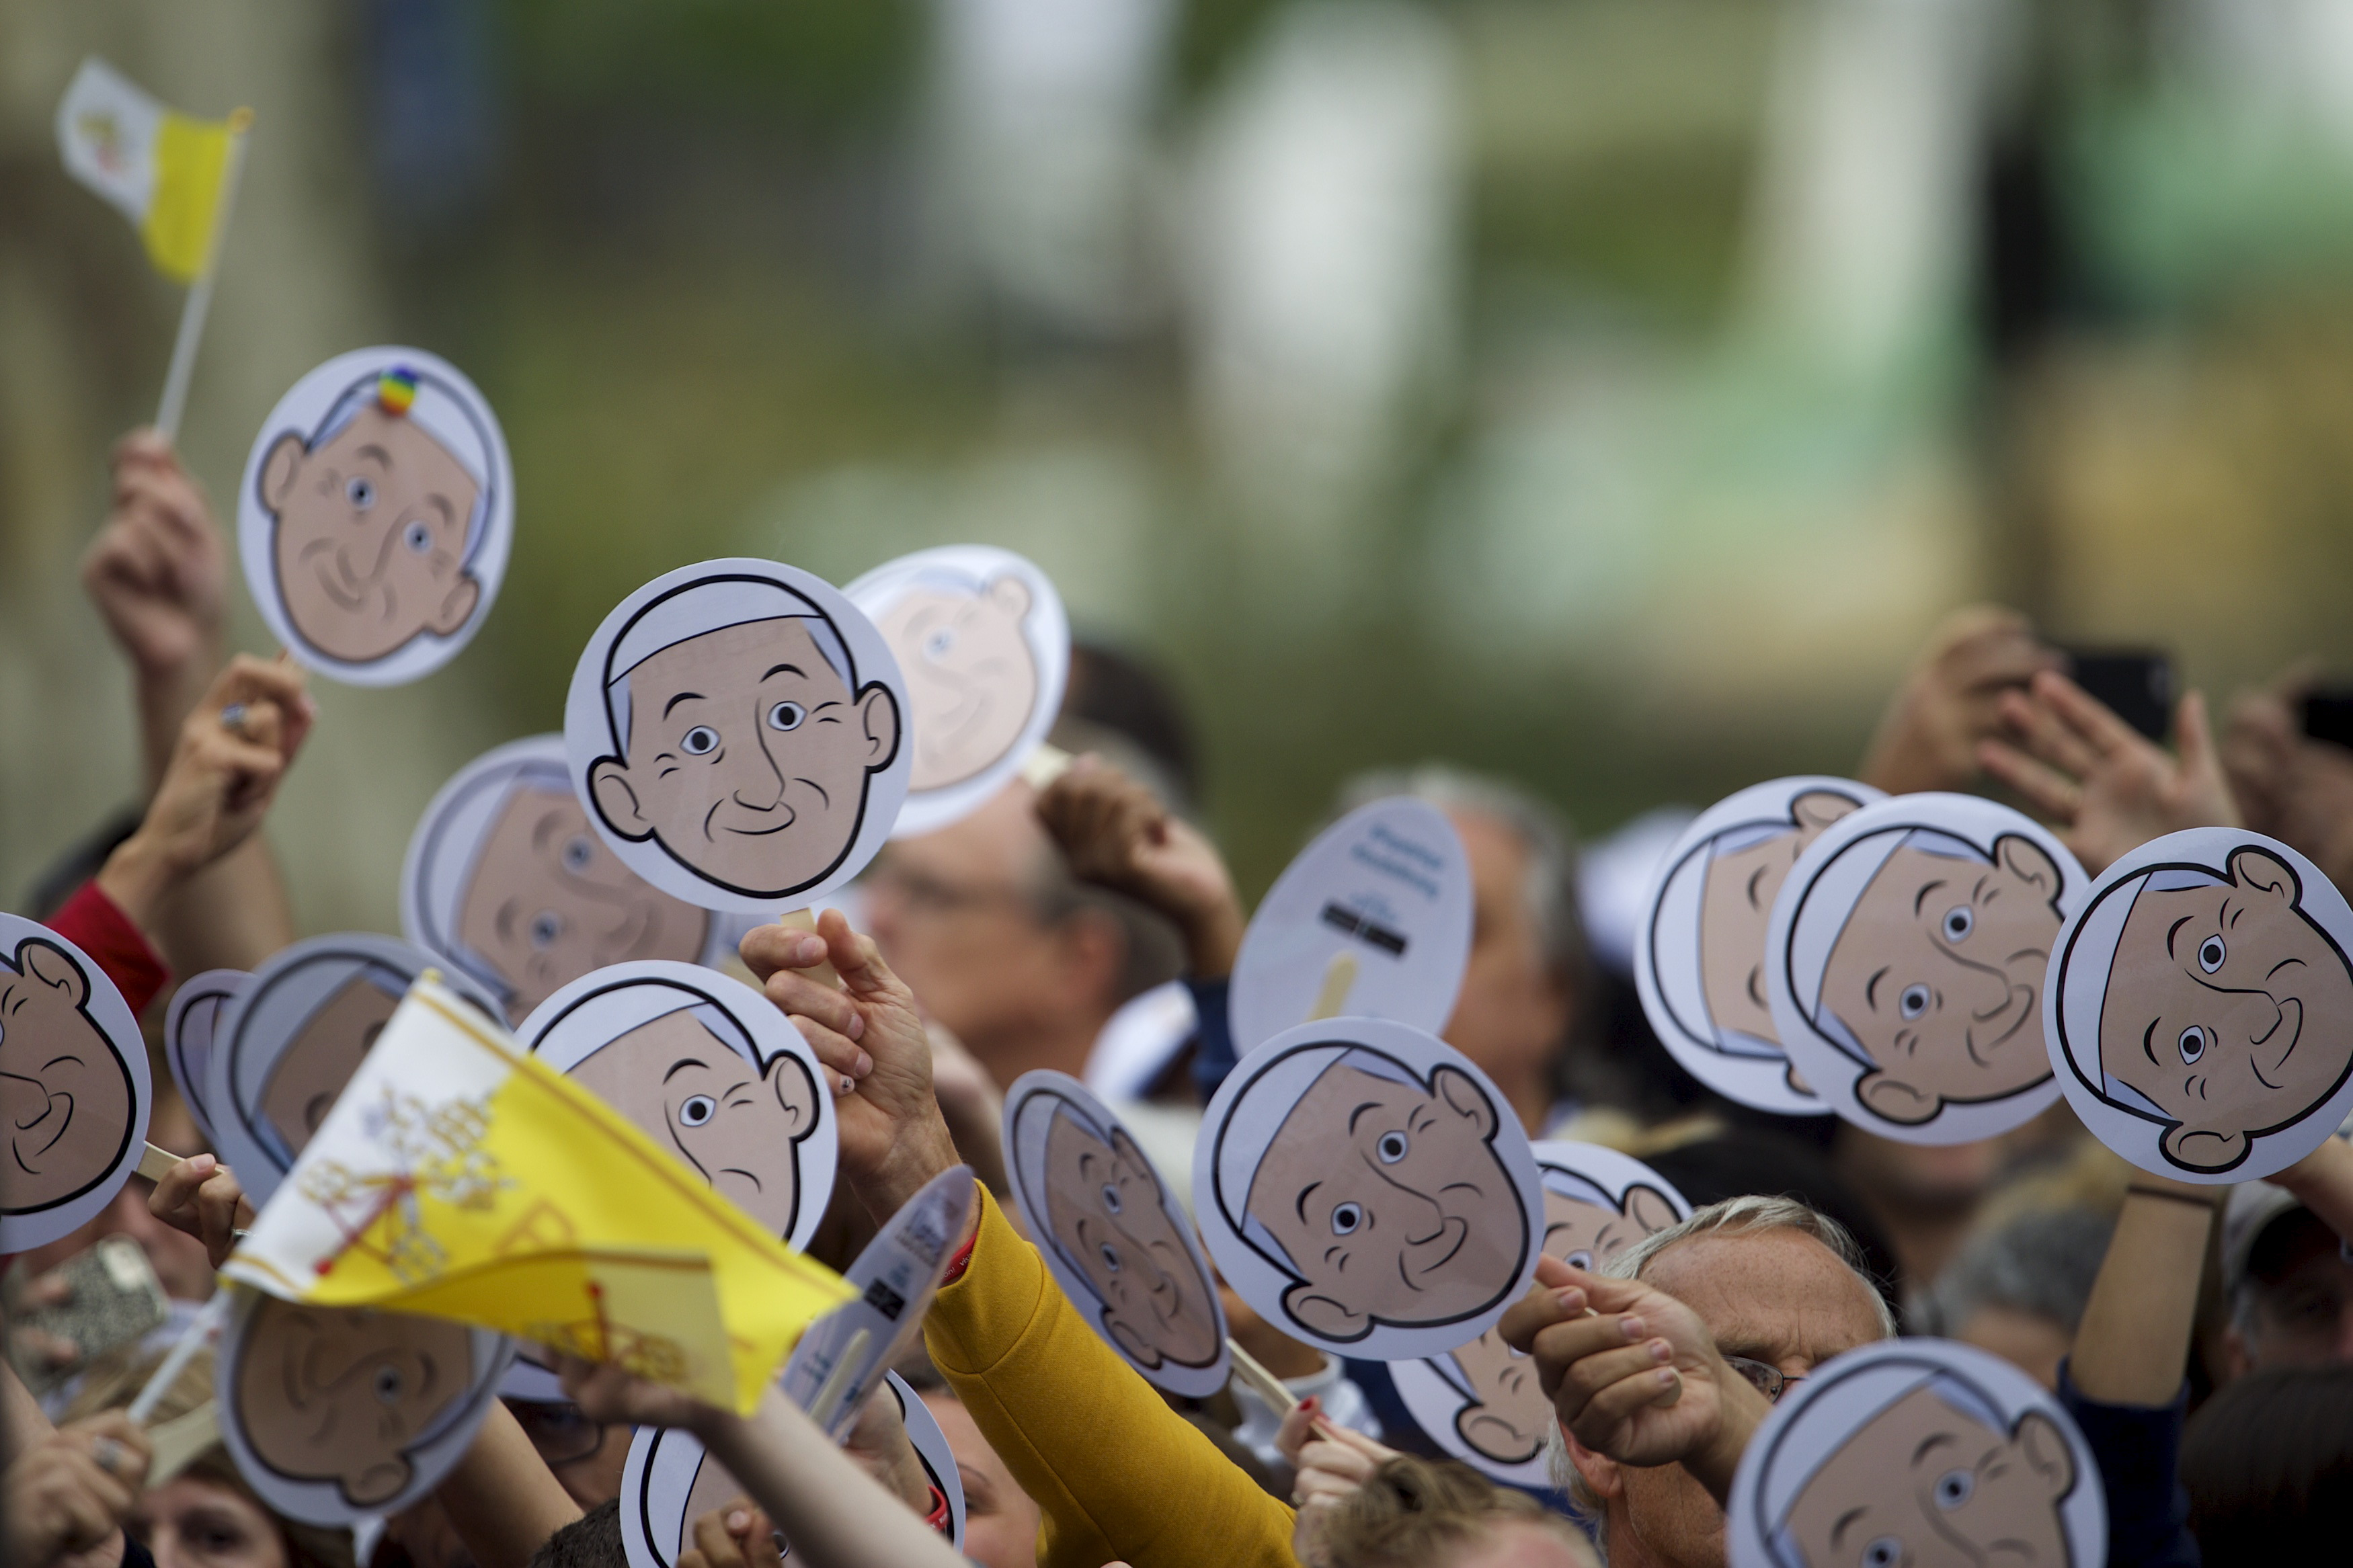 Pilgrims wave cardboard cutouts of Pope Francis before Mass at the Cathedral Basilica of Saints Peter and Paul in Philadelphia, Pennsylvania, Sept. 26, 2015.